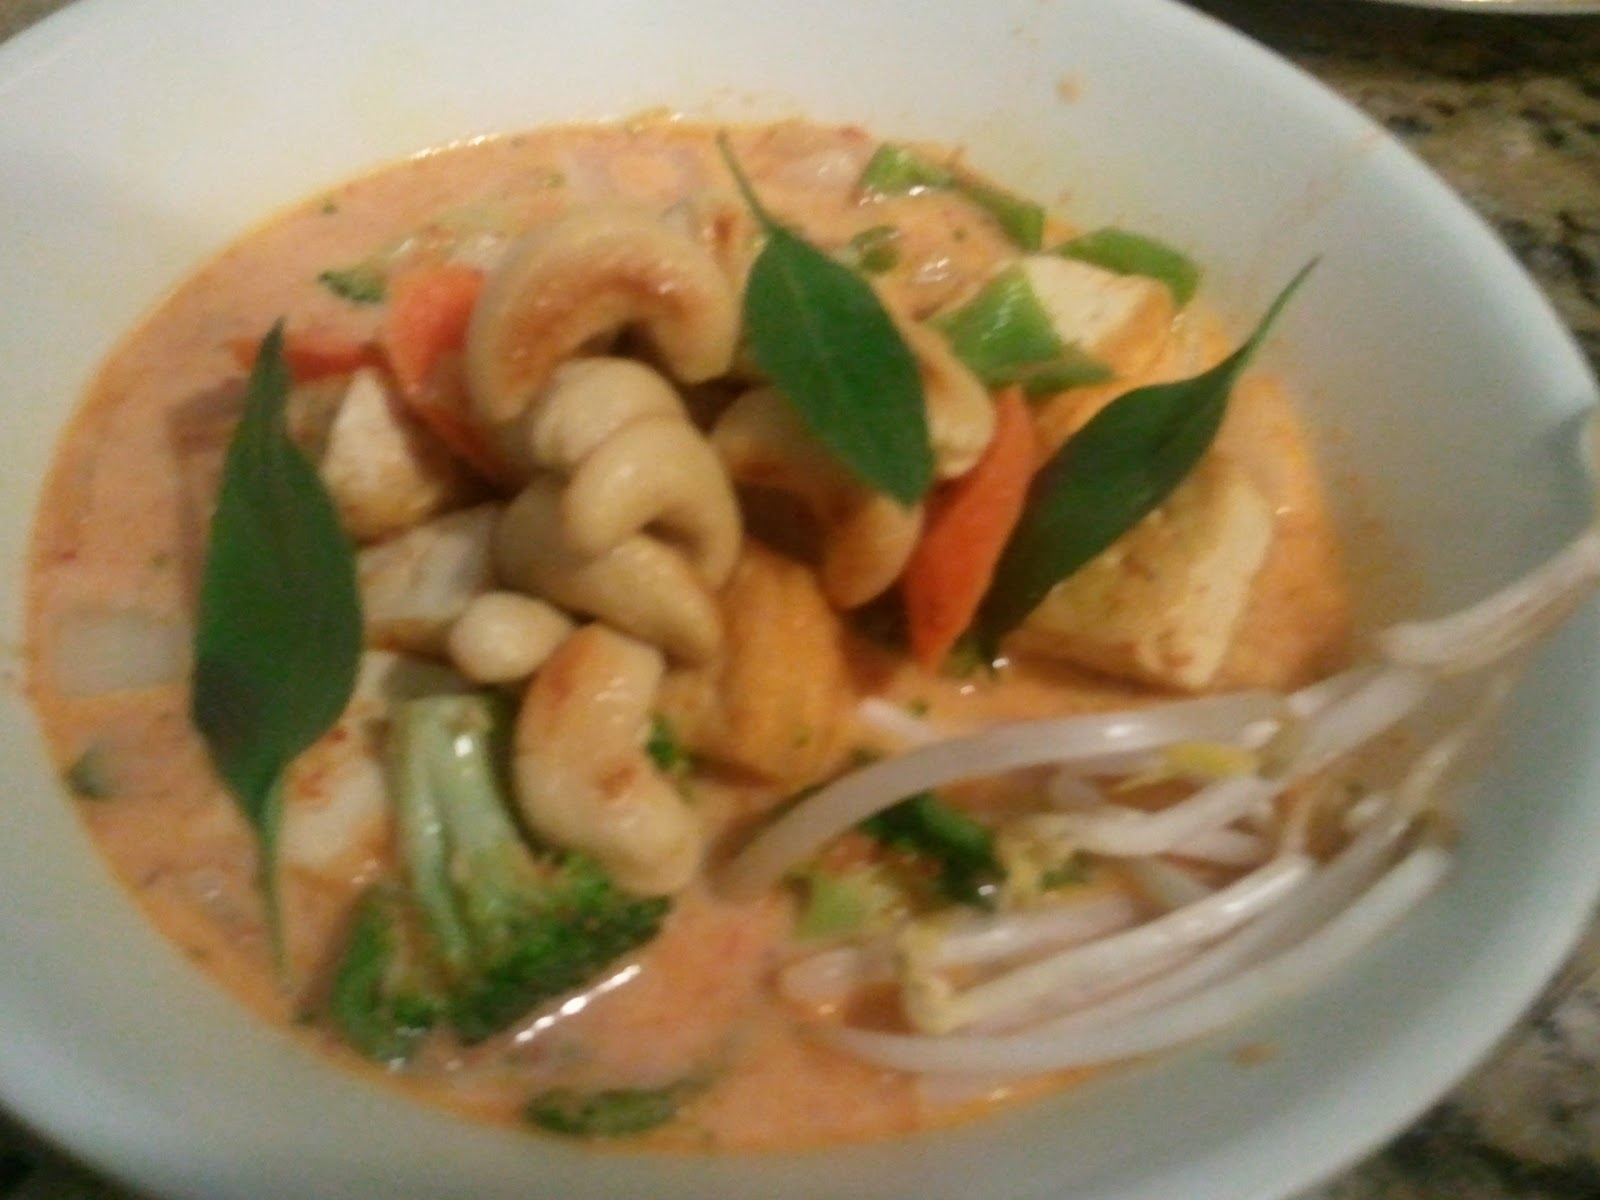 HCF: Panang curry with Tofu and Vegetables